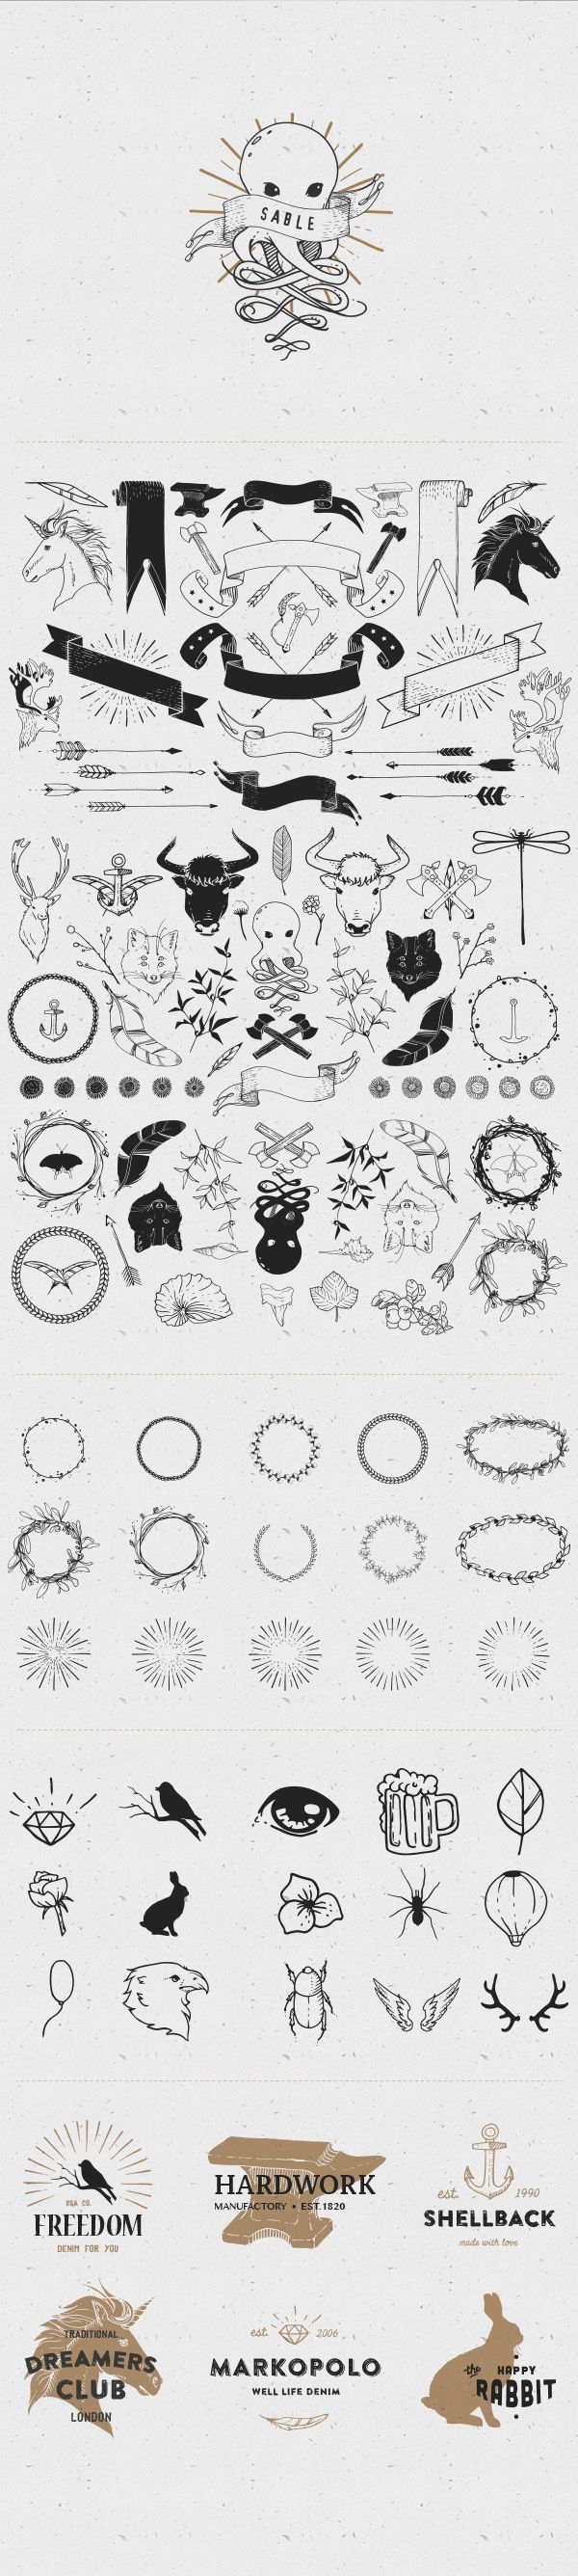 Sable Kit - hand drawn collection by Milka, via Behance